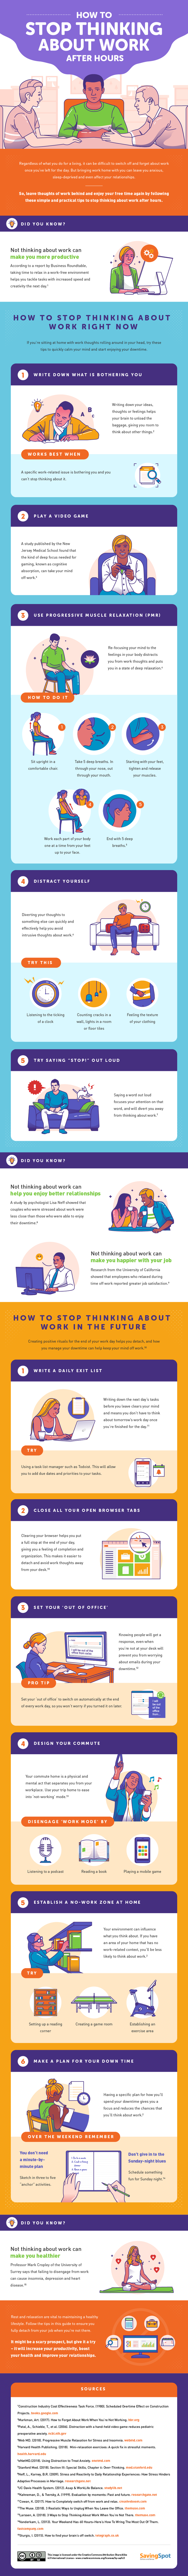 How to stop thinking about work after hours